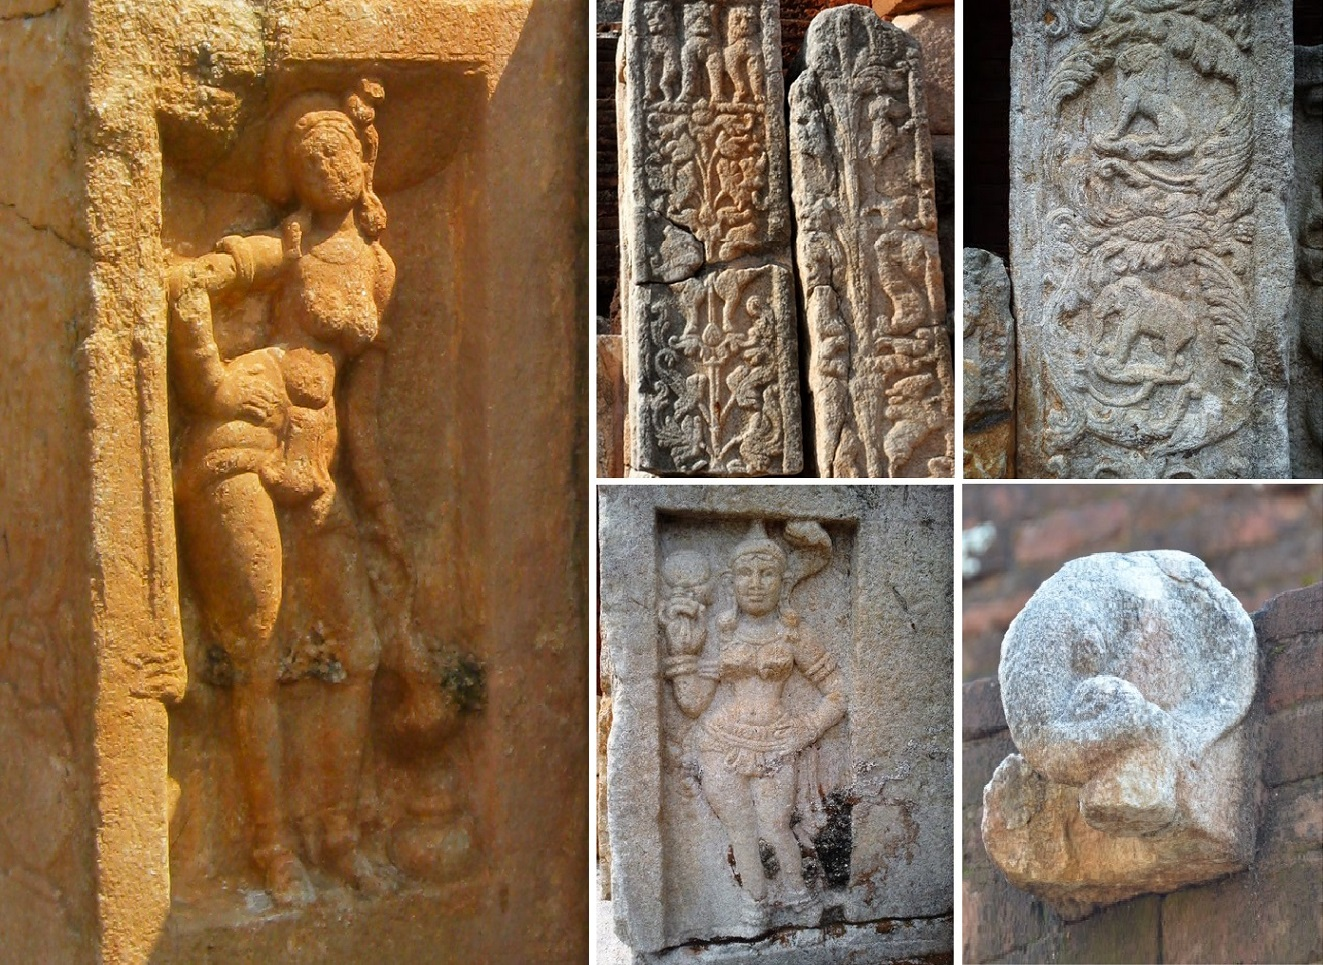 Various carvings on vahalkada.